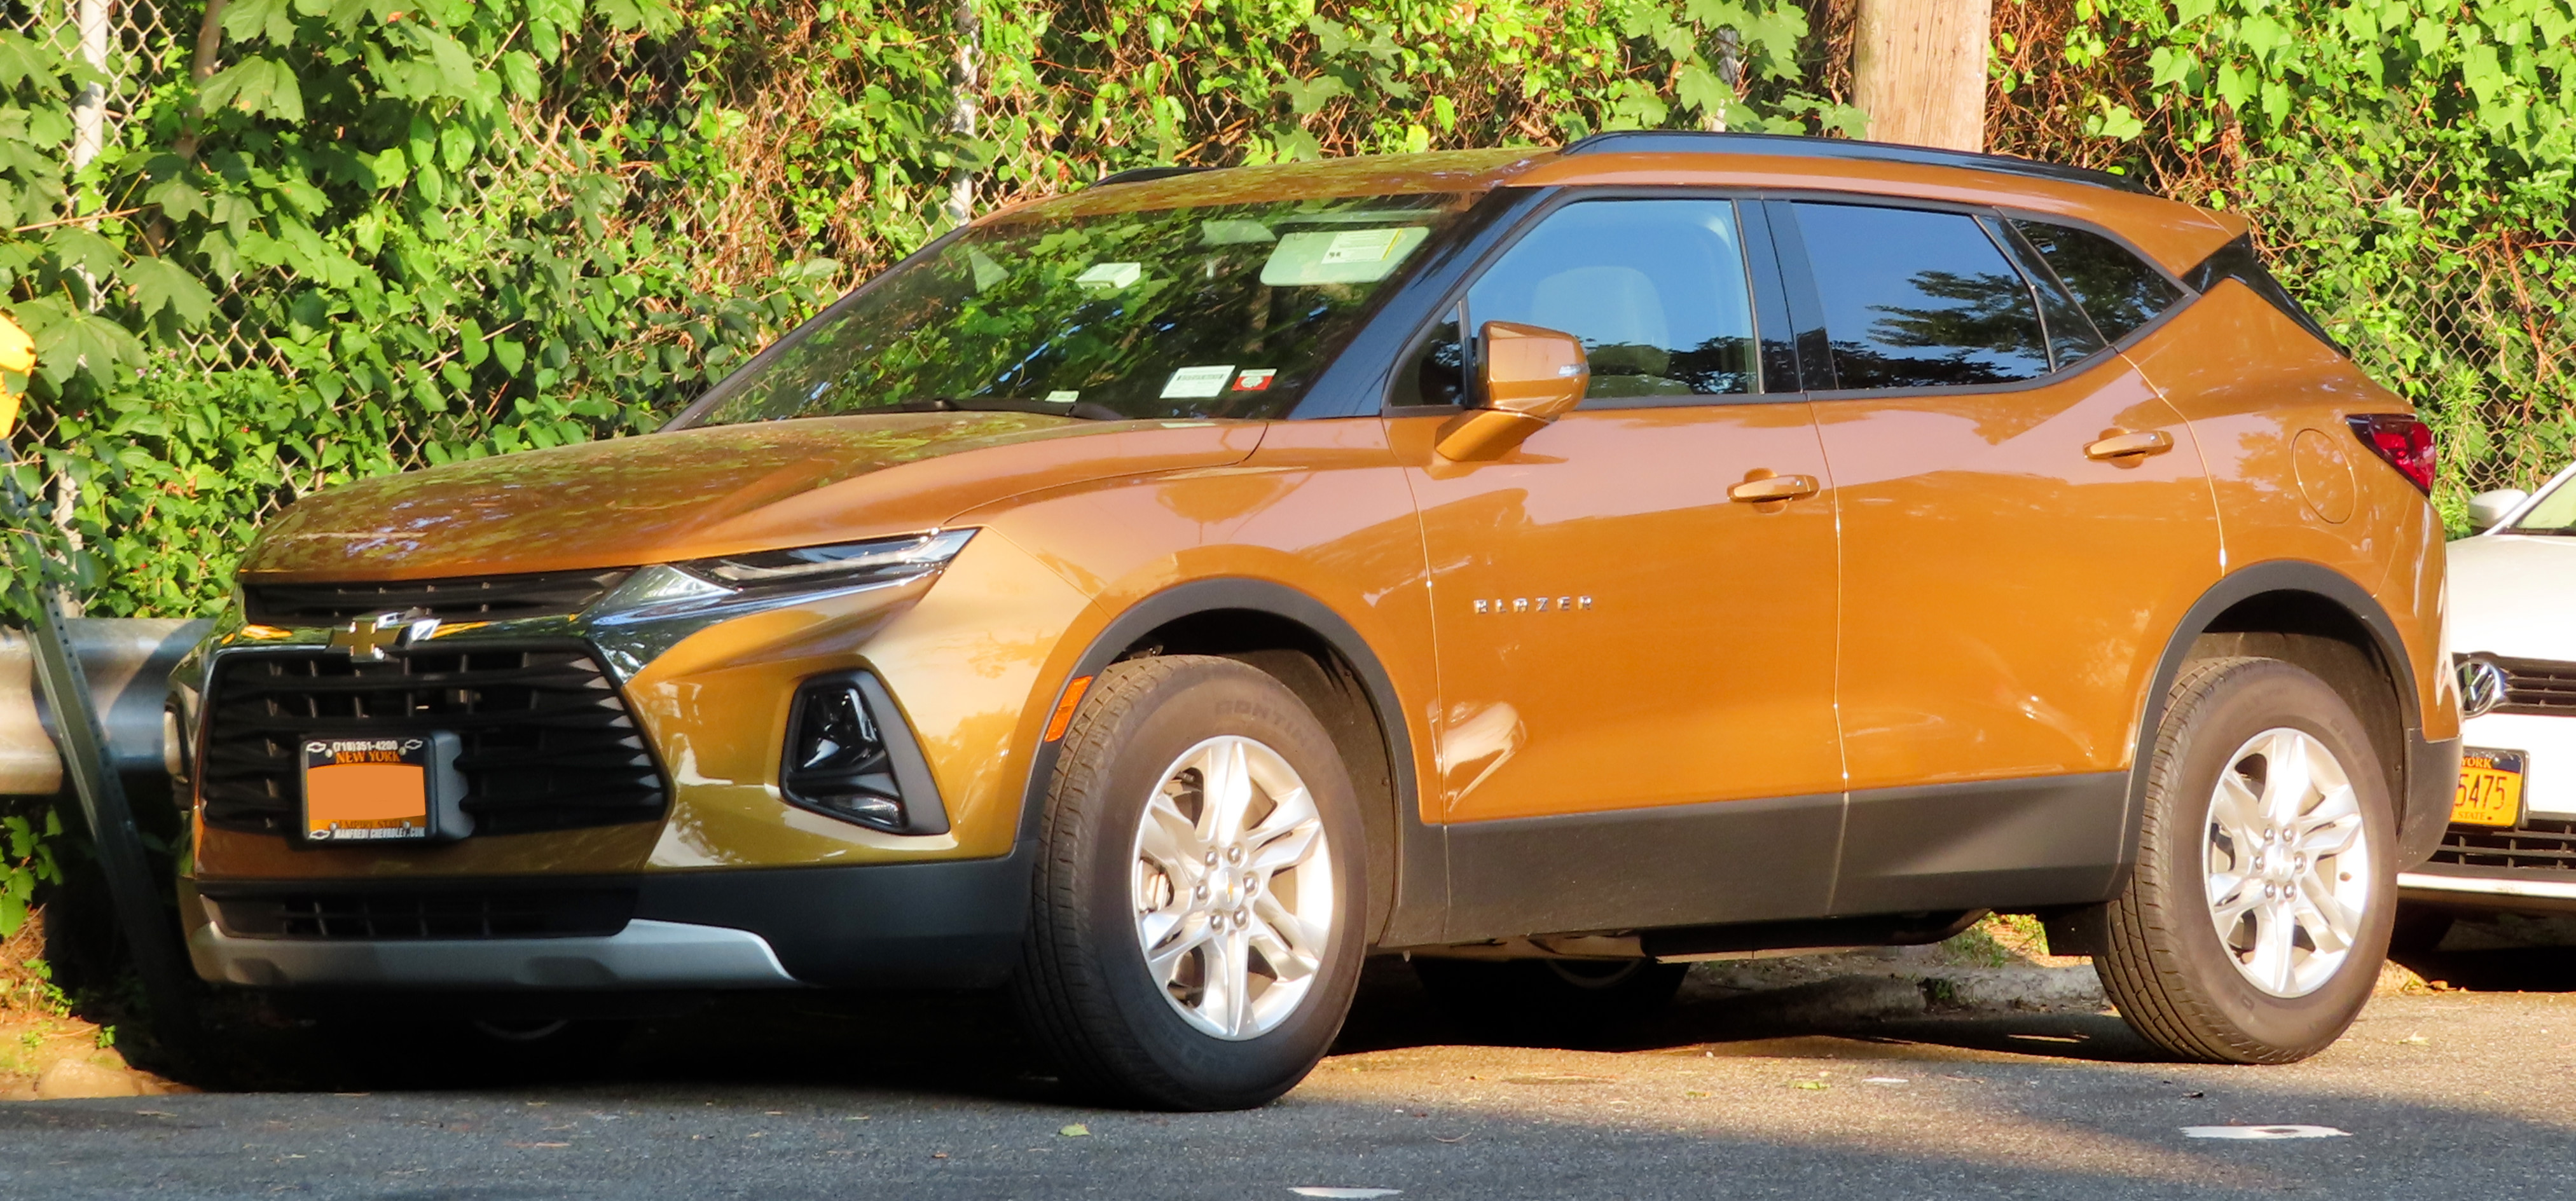 2020 Chevy Blazer: News, Design, Specs >> Chevrolet Blazer Crossover Wikipedia